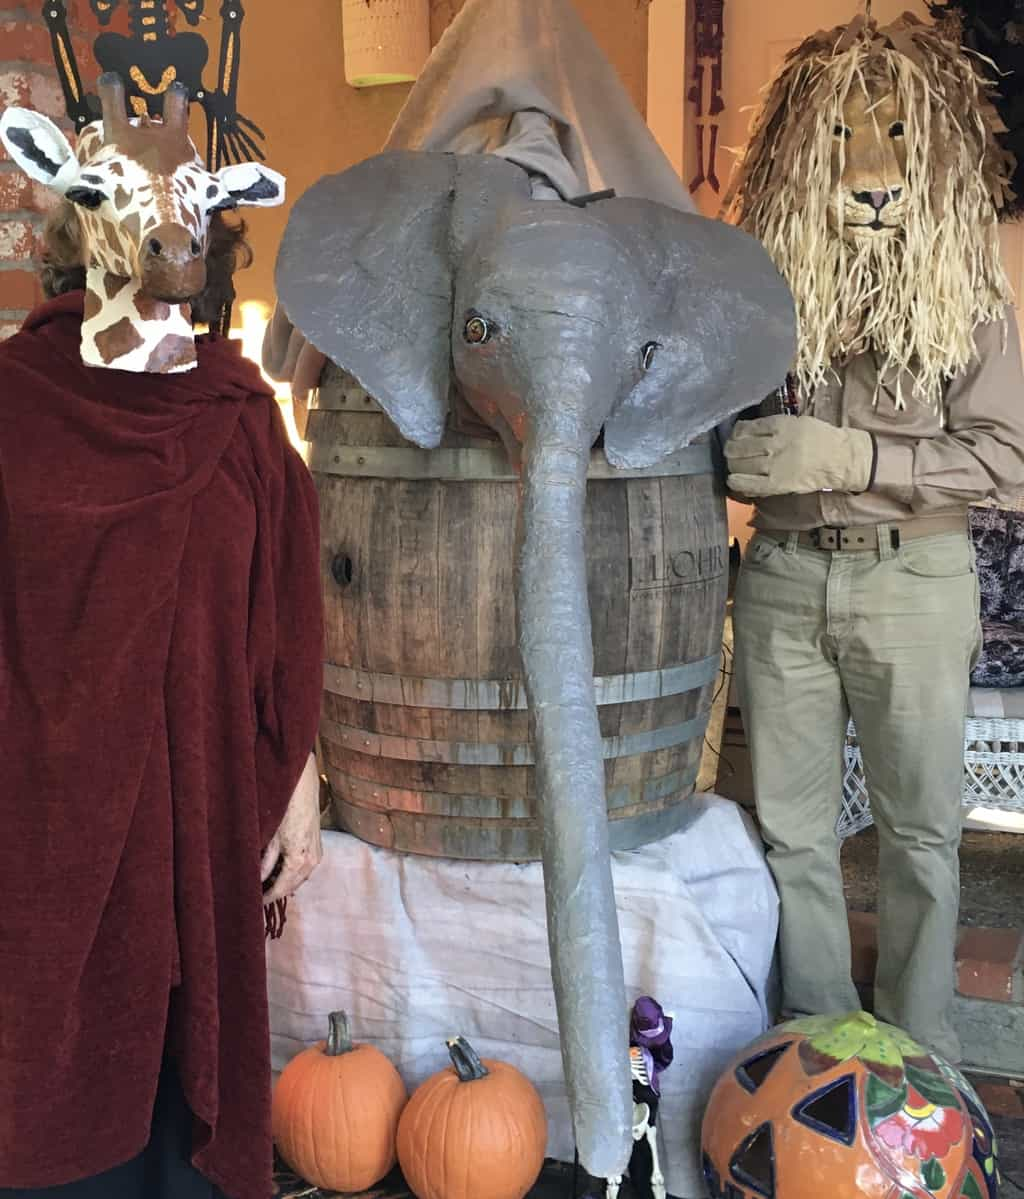 Animal masks and Elephant trunk treat delivery system...